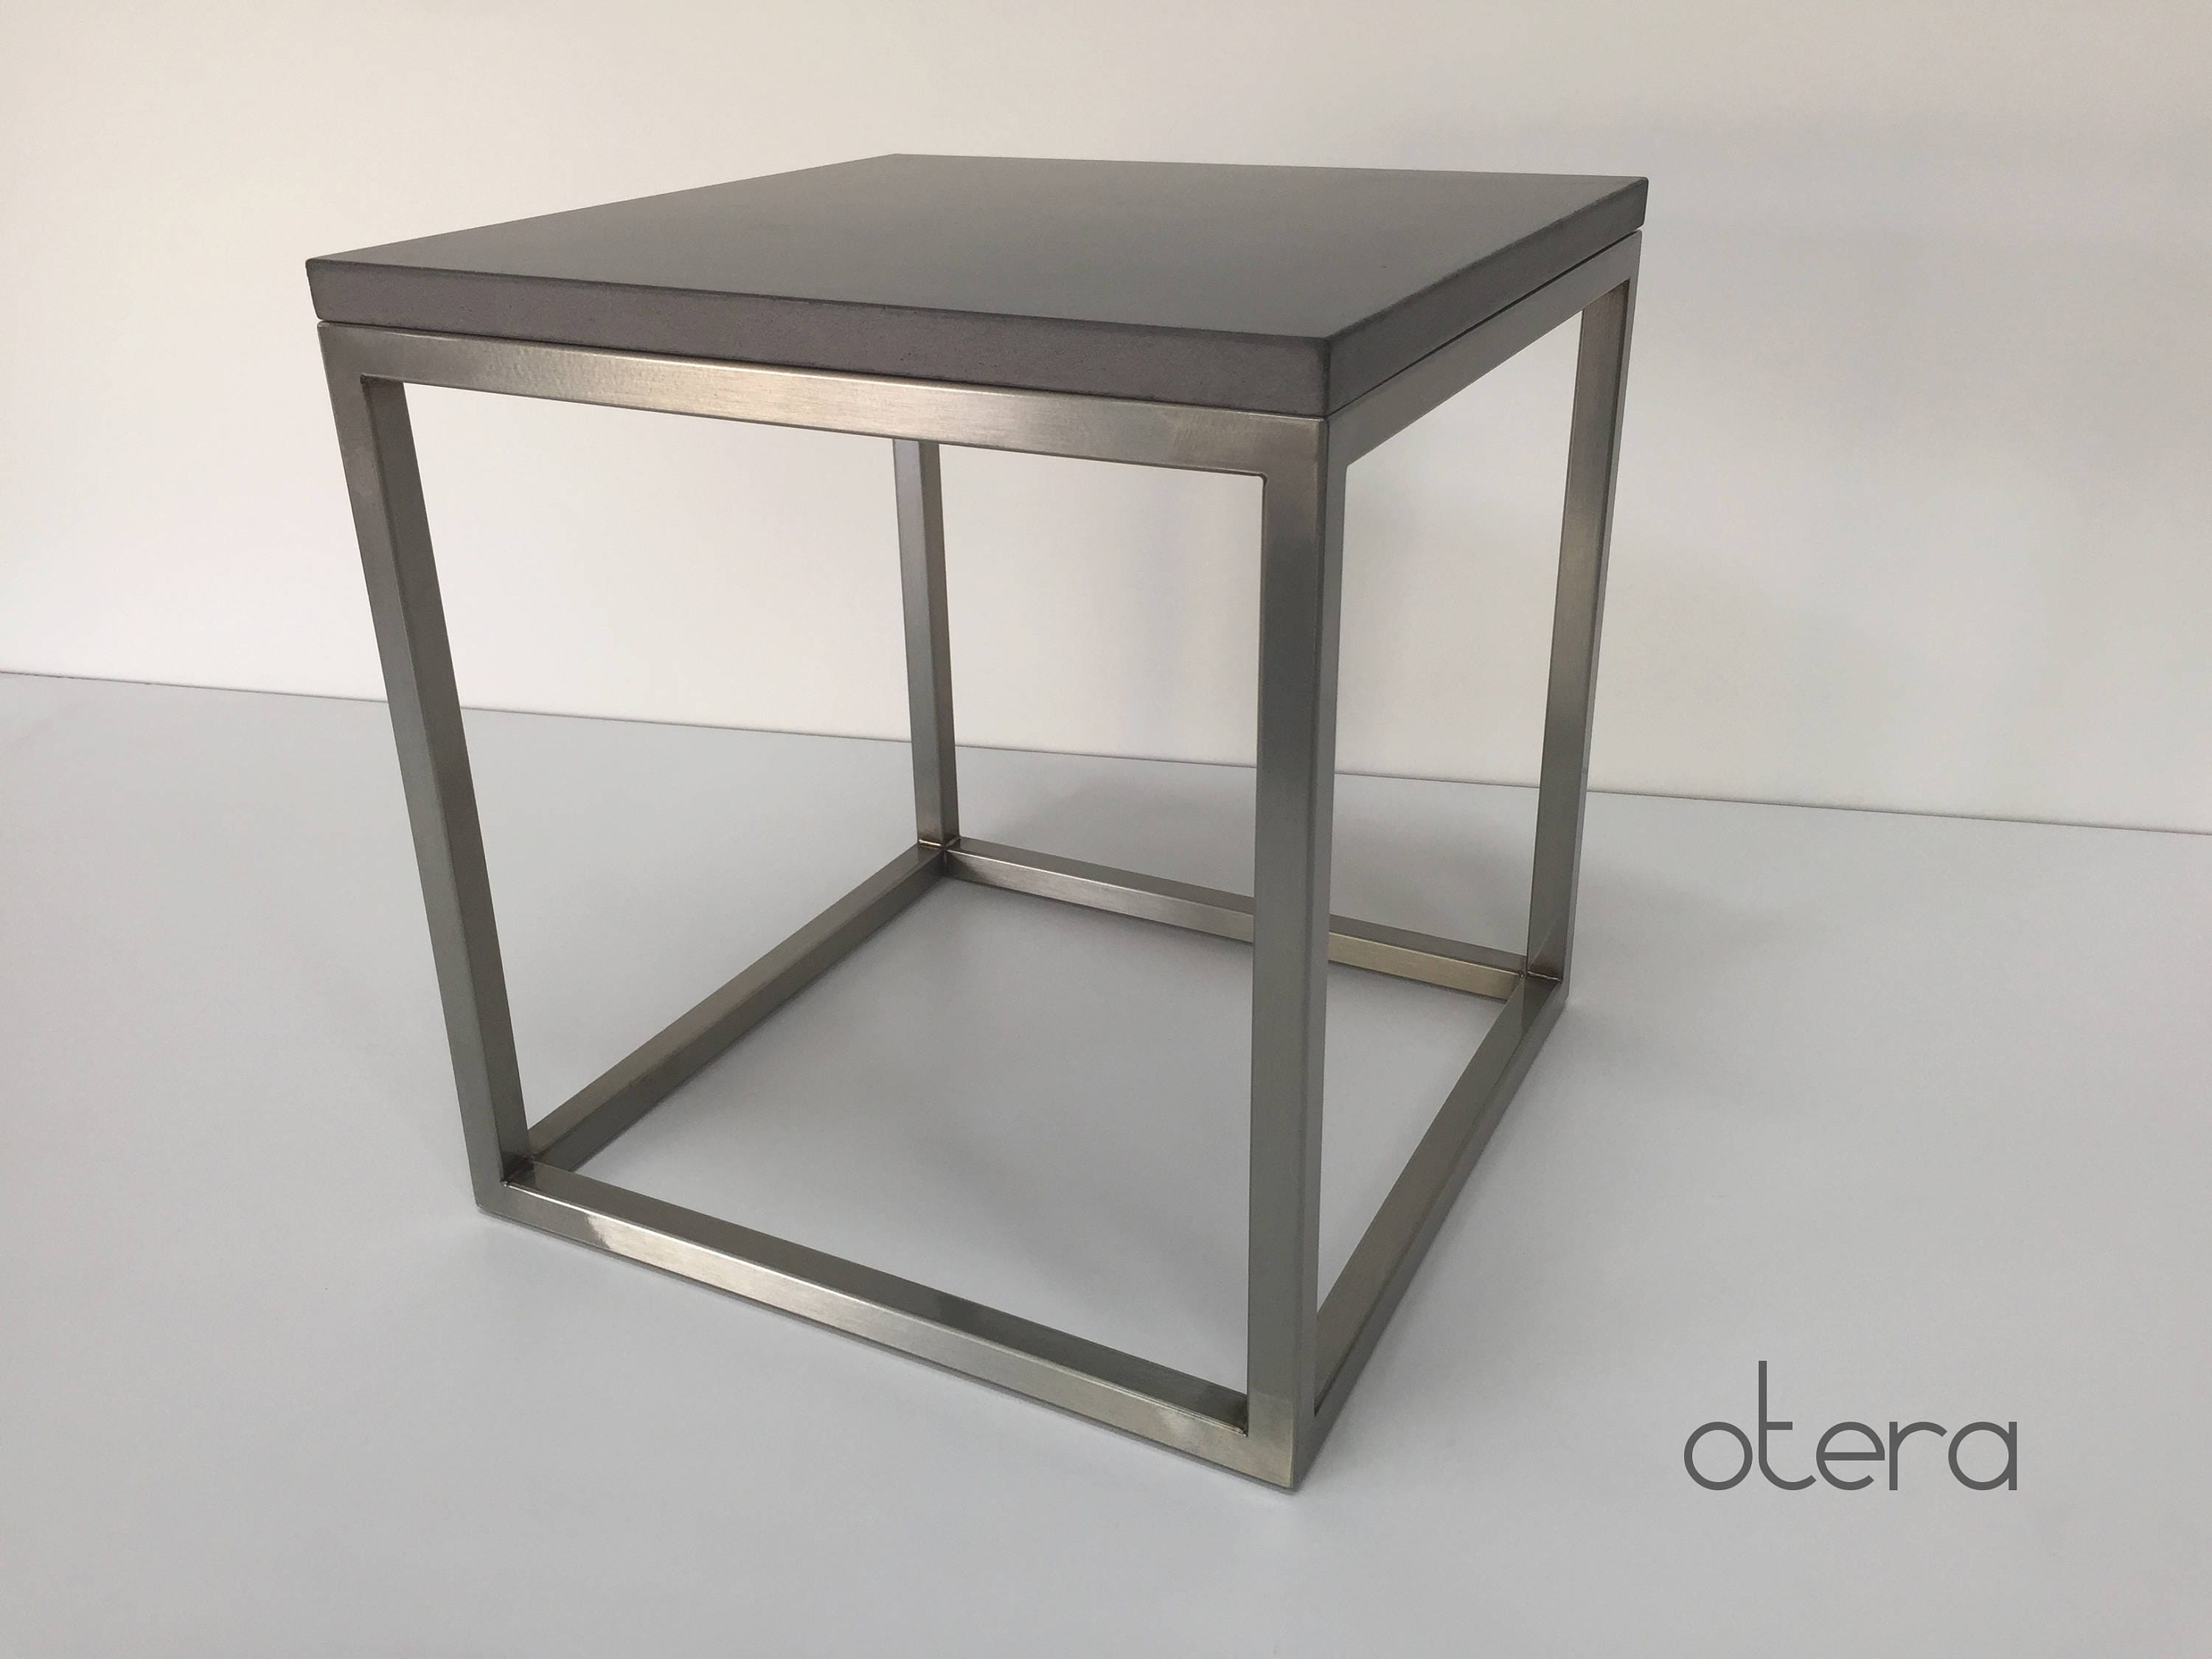 Couchtisch Cubic Concrete Stainless Steel Occasional Table Coffee Table In Anthracite Otera